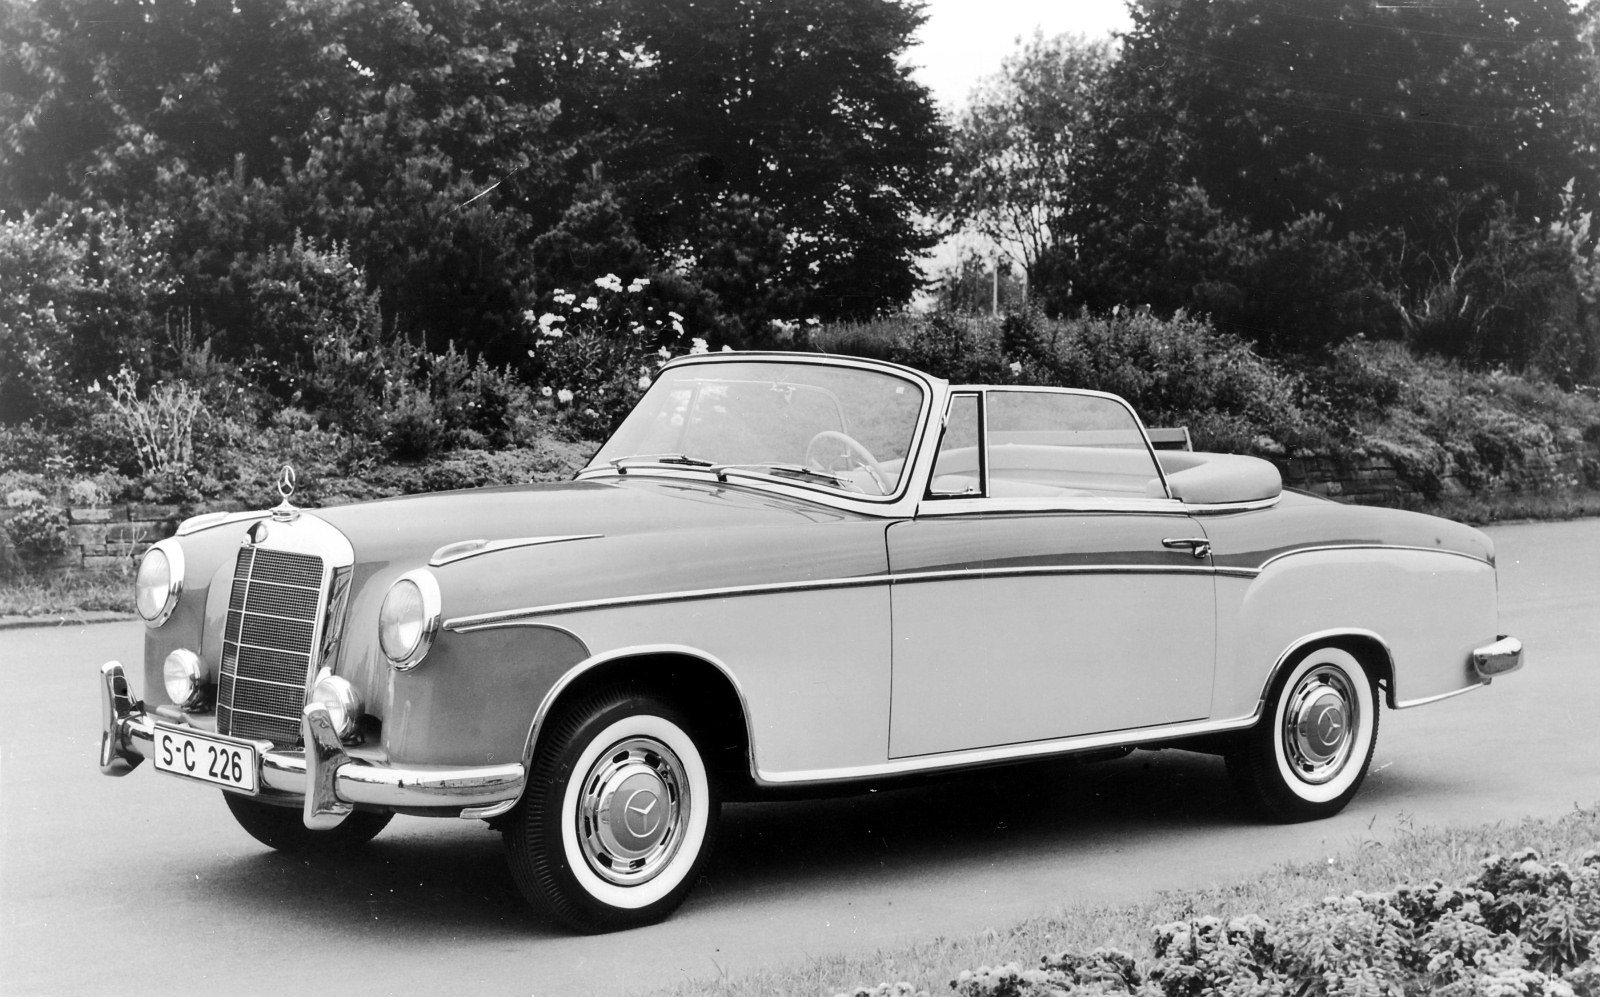 Mercedes benz 220 technical details history photos on for Mercedes benz facts